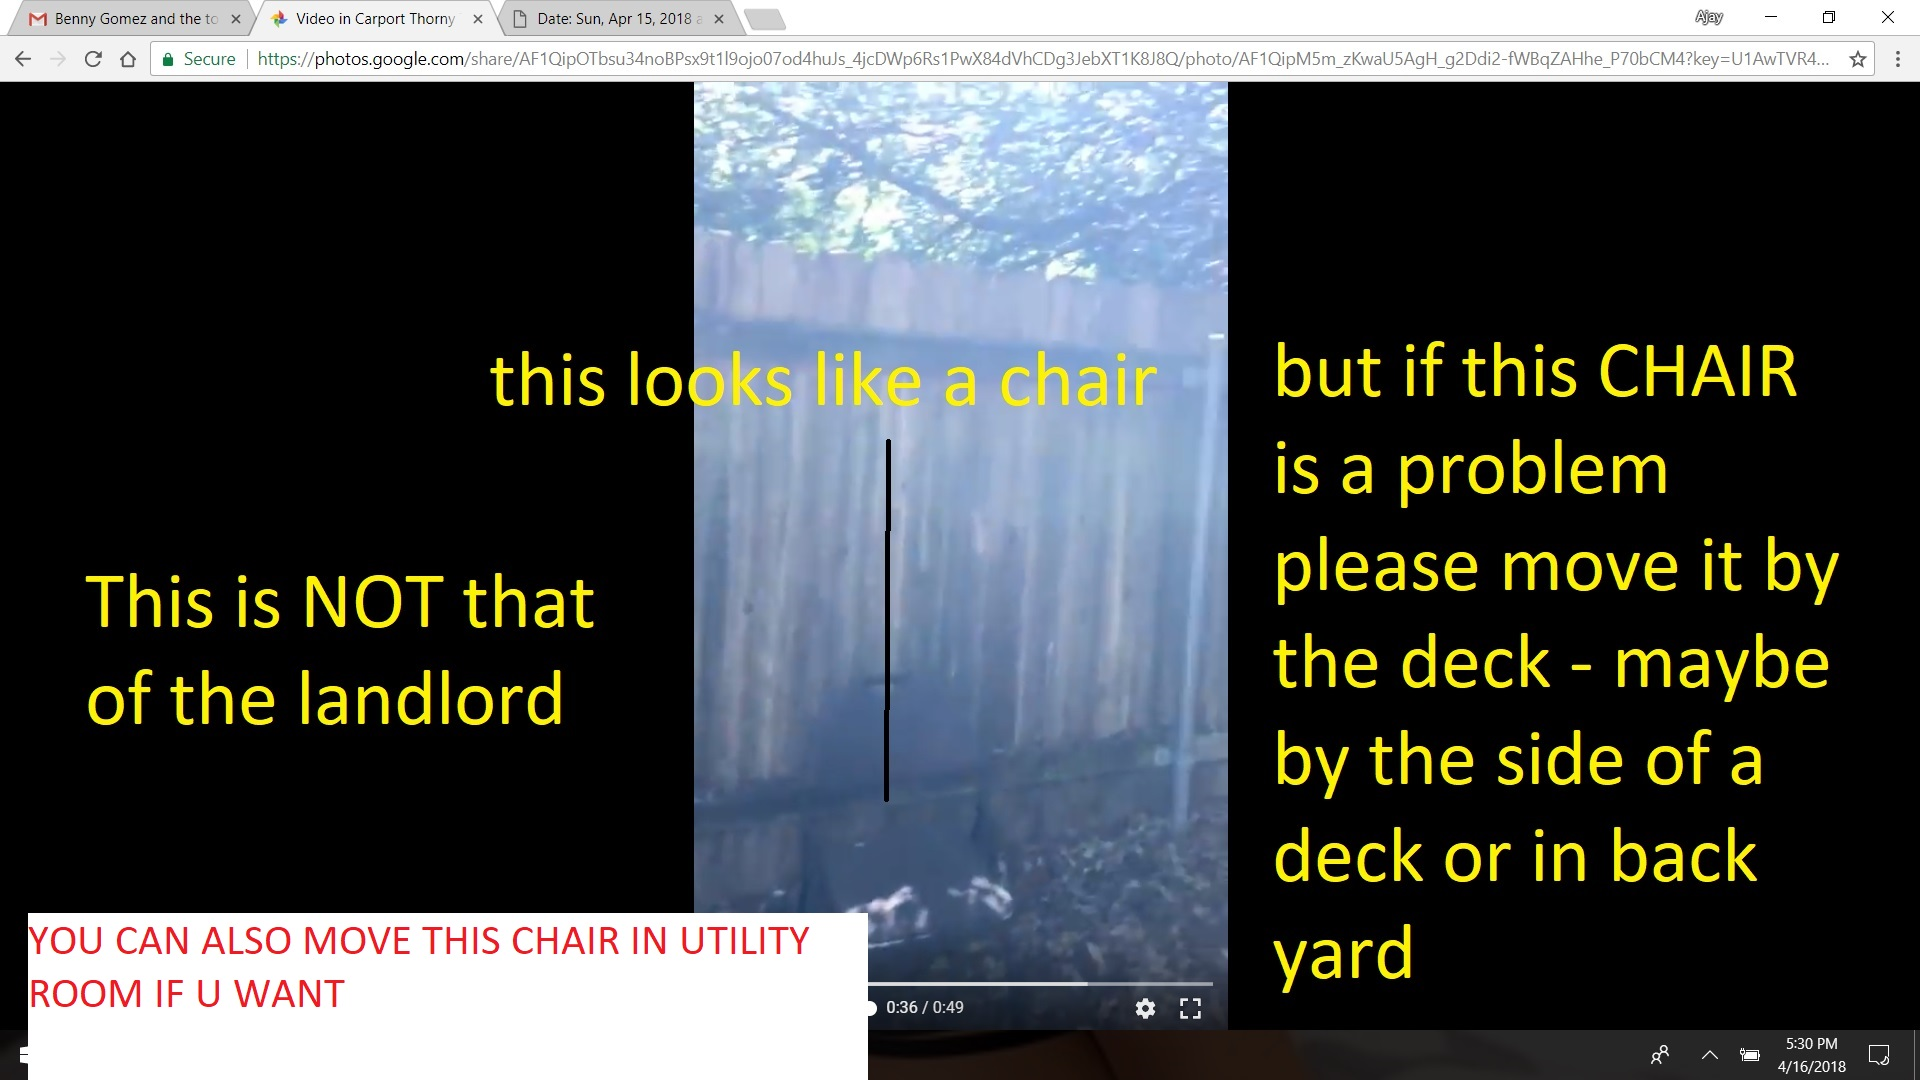 A SMALL CHAIR FOUND BY THE CARPORT - BY TENANT ON APRIL 15 2018